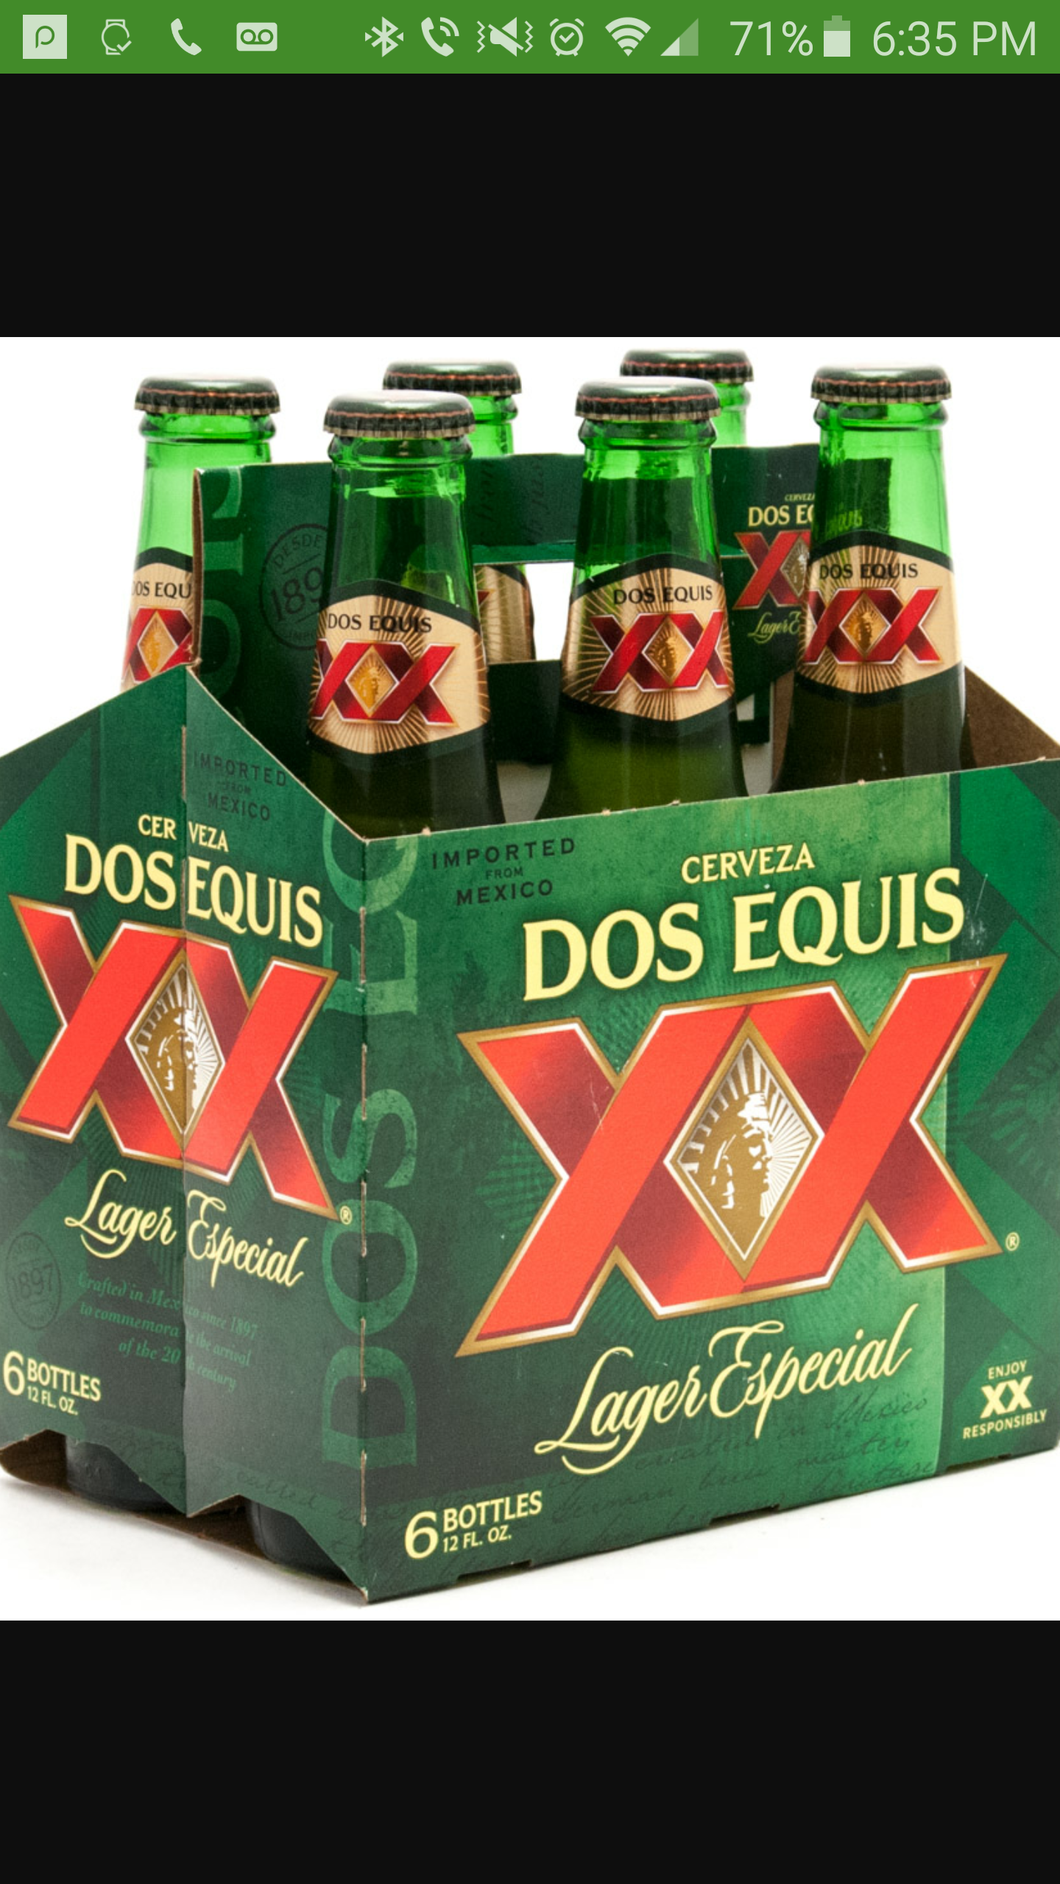 Dos Equis XX Lager Especial 6PK Bottles